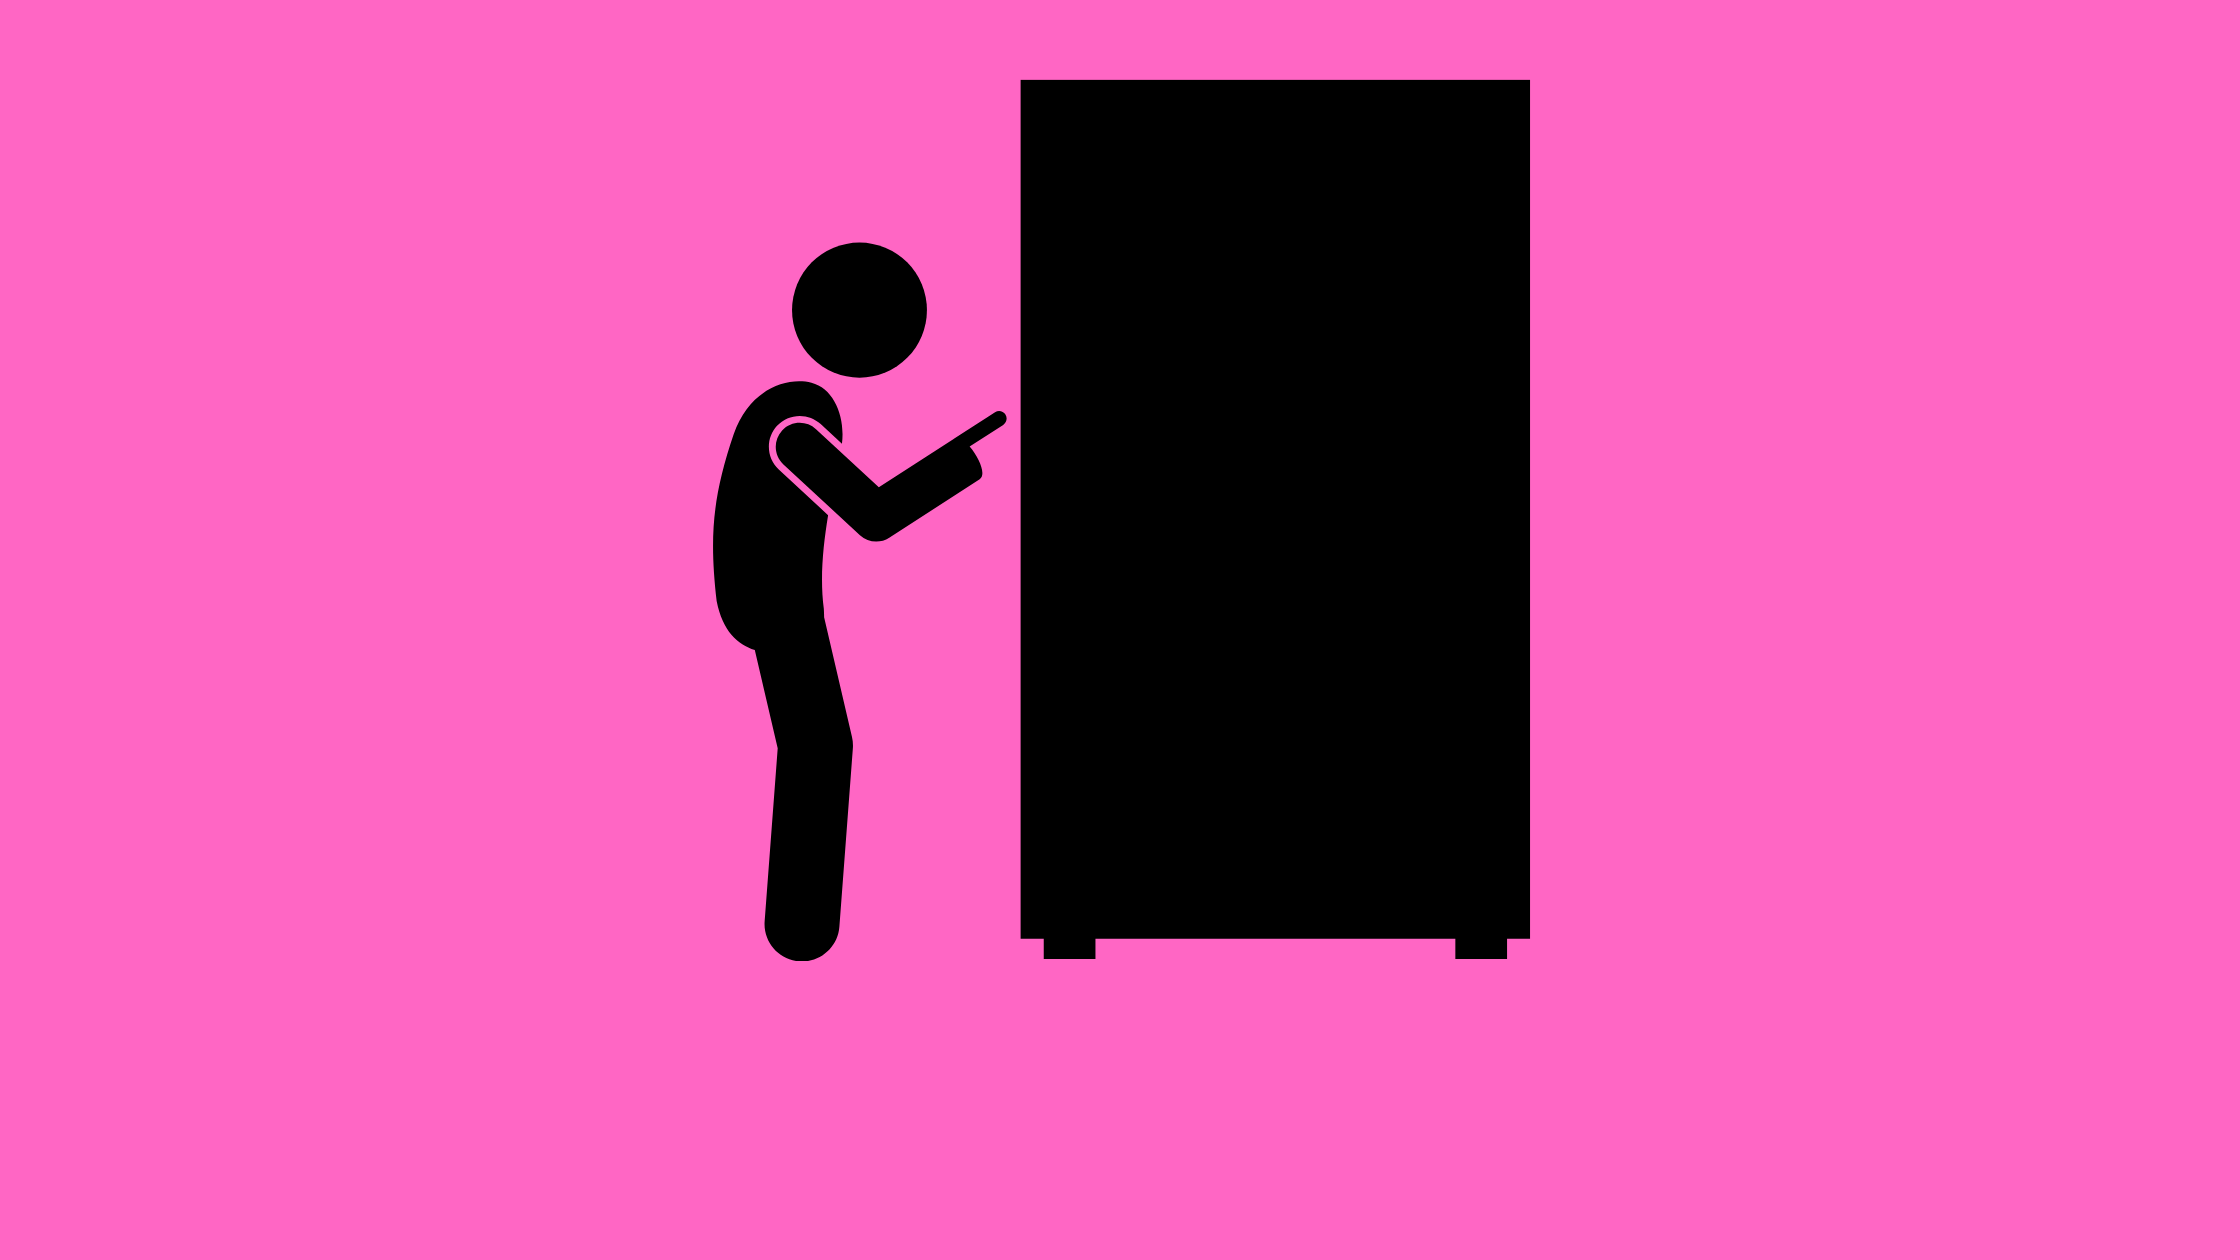 illustration of a person pressing a button on a vending machine